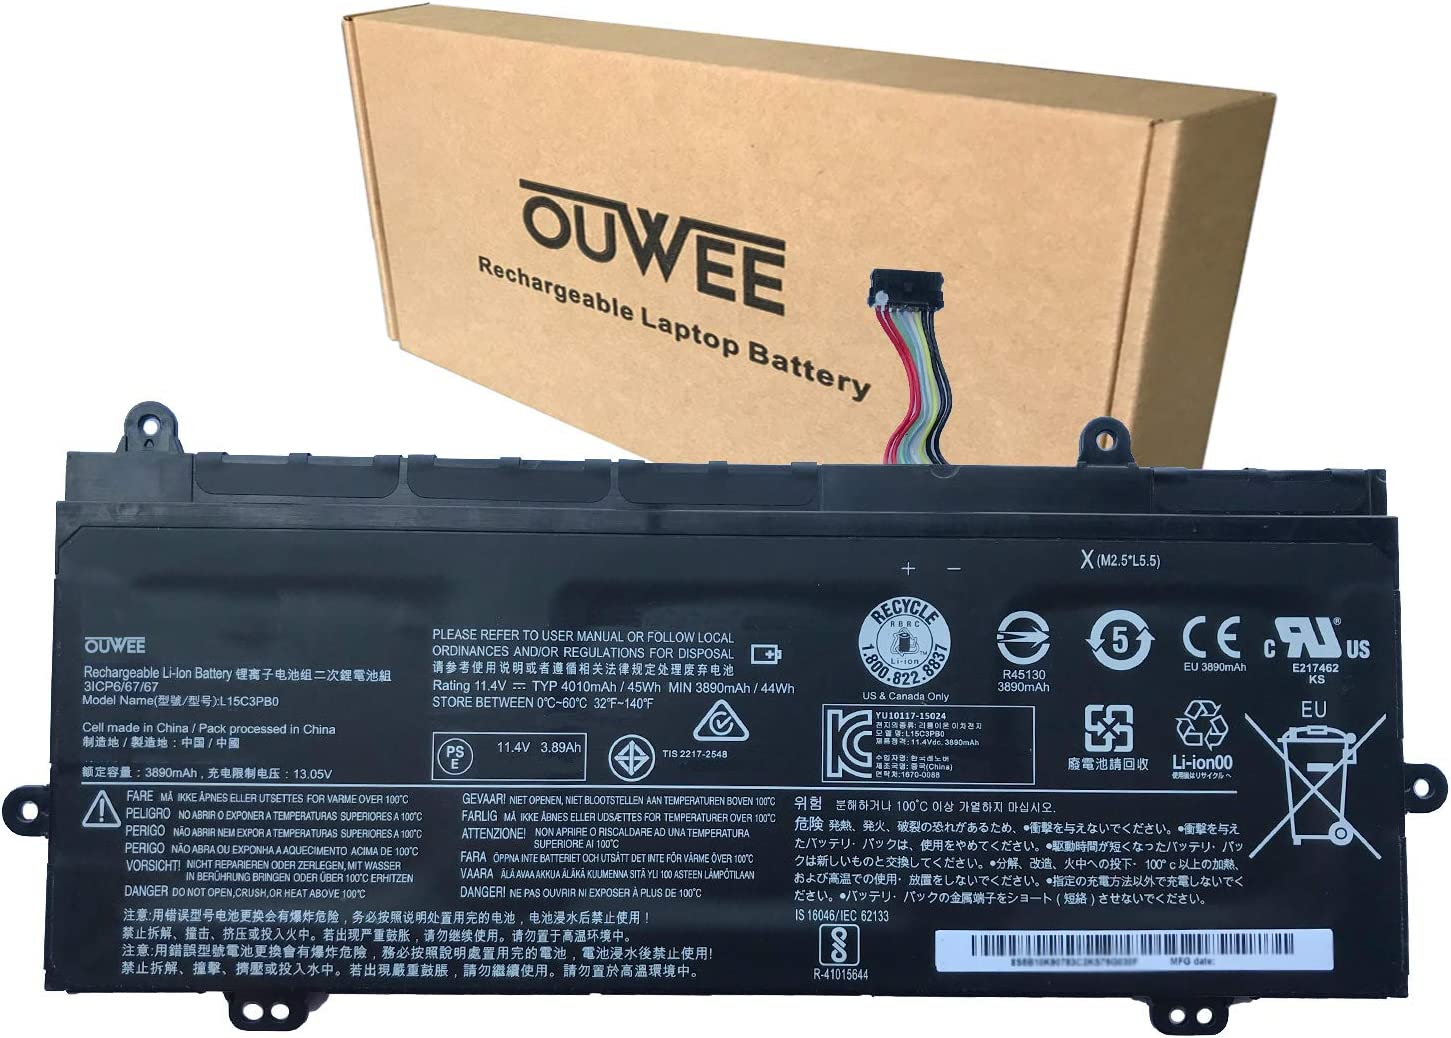 OUWEE L15C3PB0 Laptop Battery Compatible with Lenovo 100e Winbook/300e Winbook/N22 N23 Winbook Series Notebook L15M3PB2 5B10K90780 5B10K90783 11.4V 45Wh 3890mAh